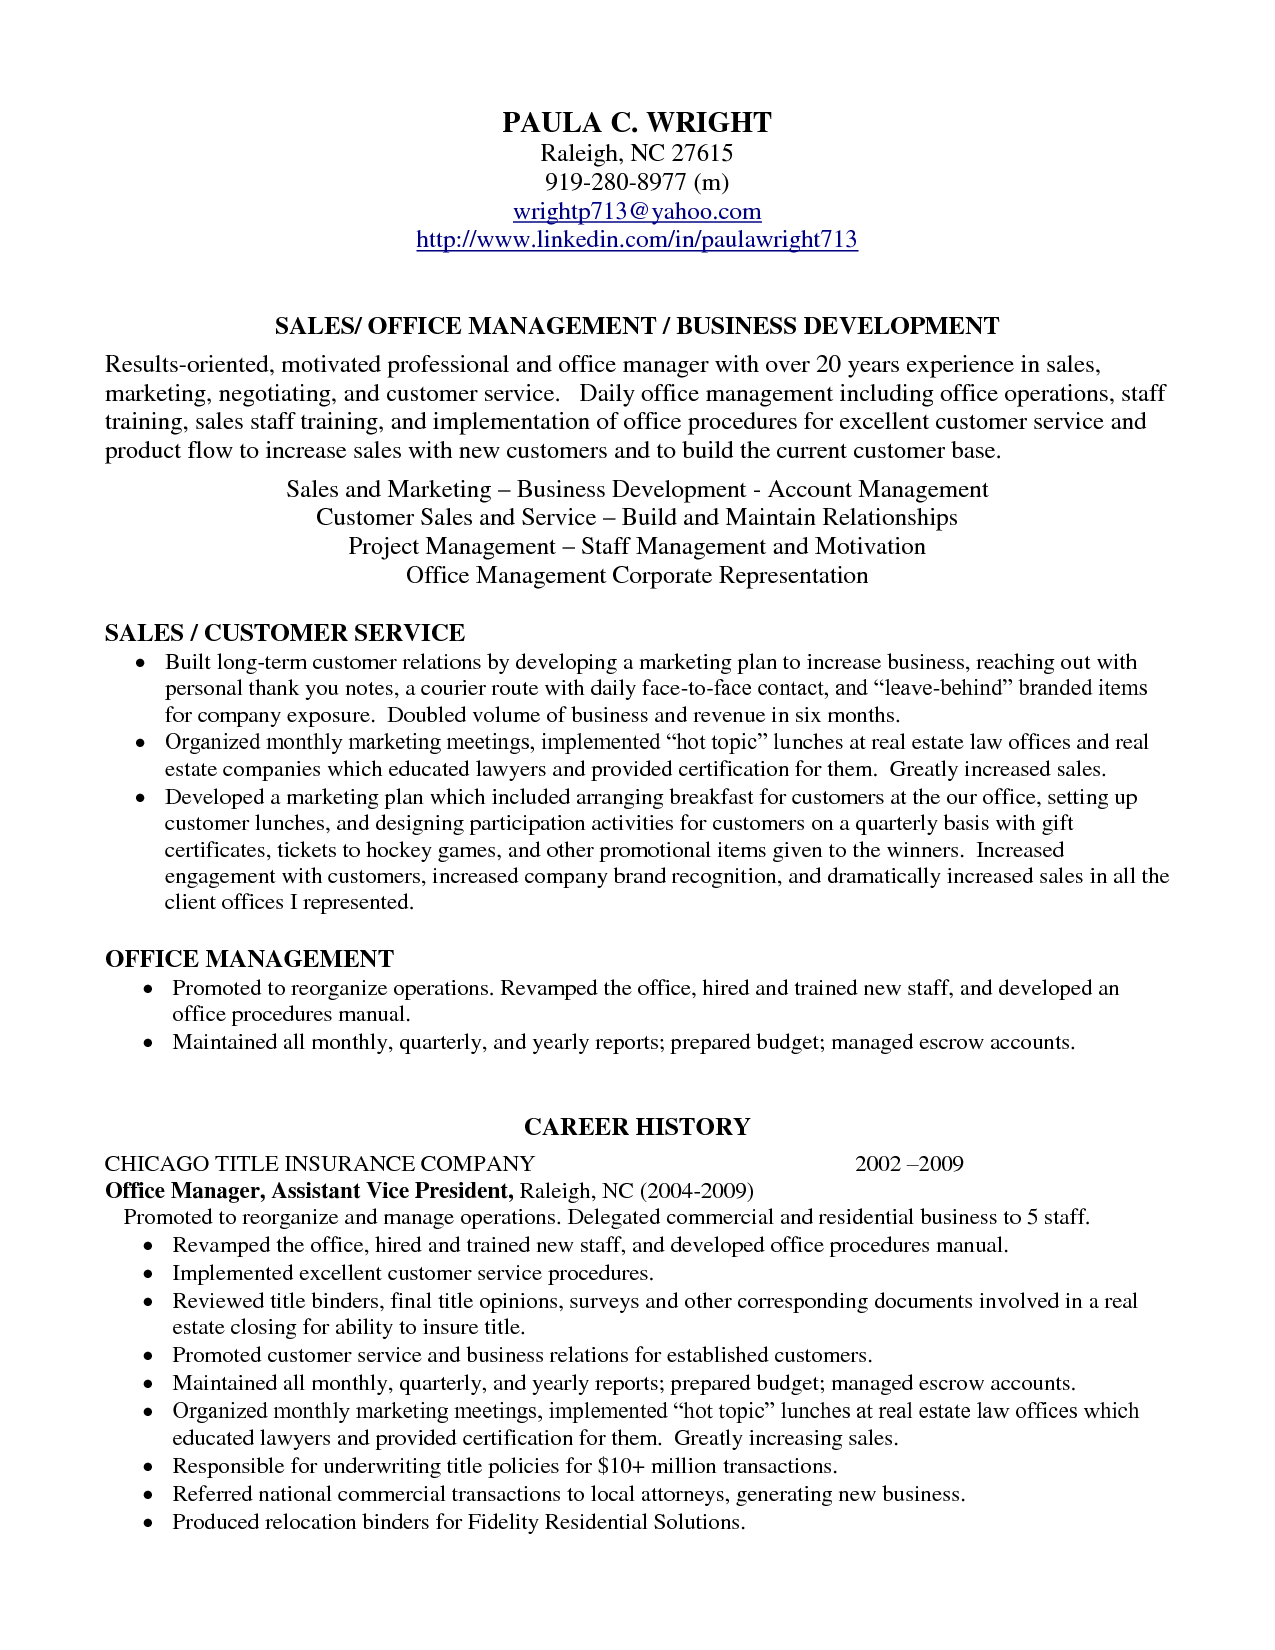 Attractive Professional Marketing Resume Sample Manager  Resume Profile Samples